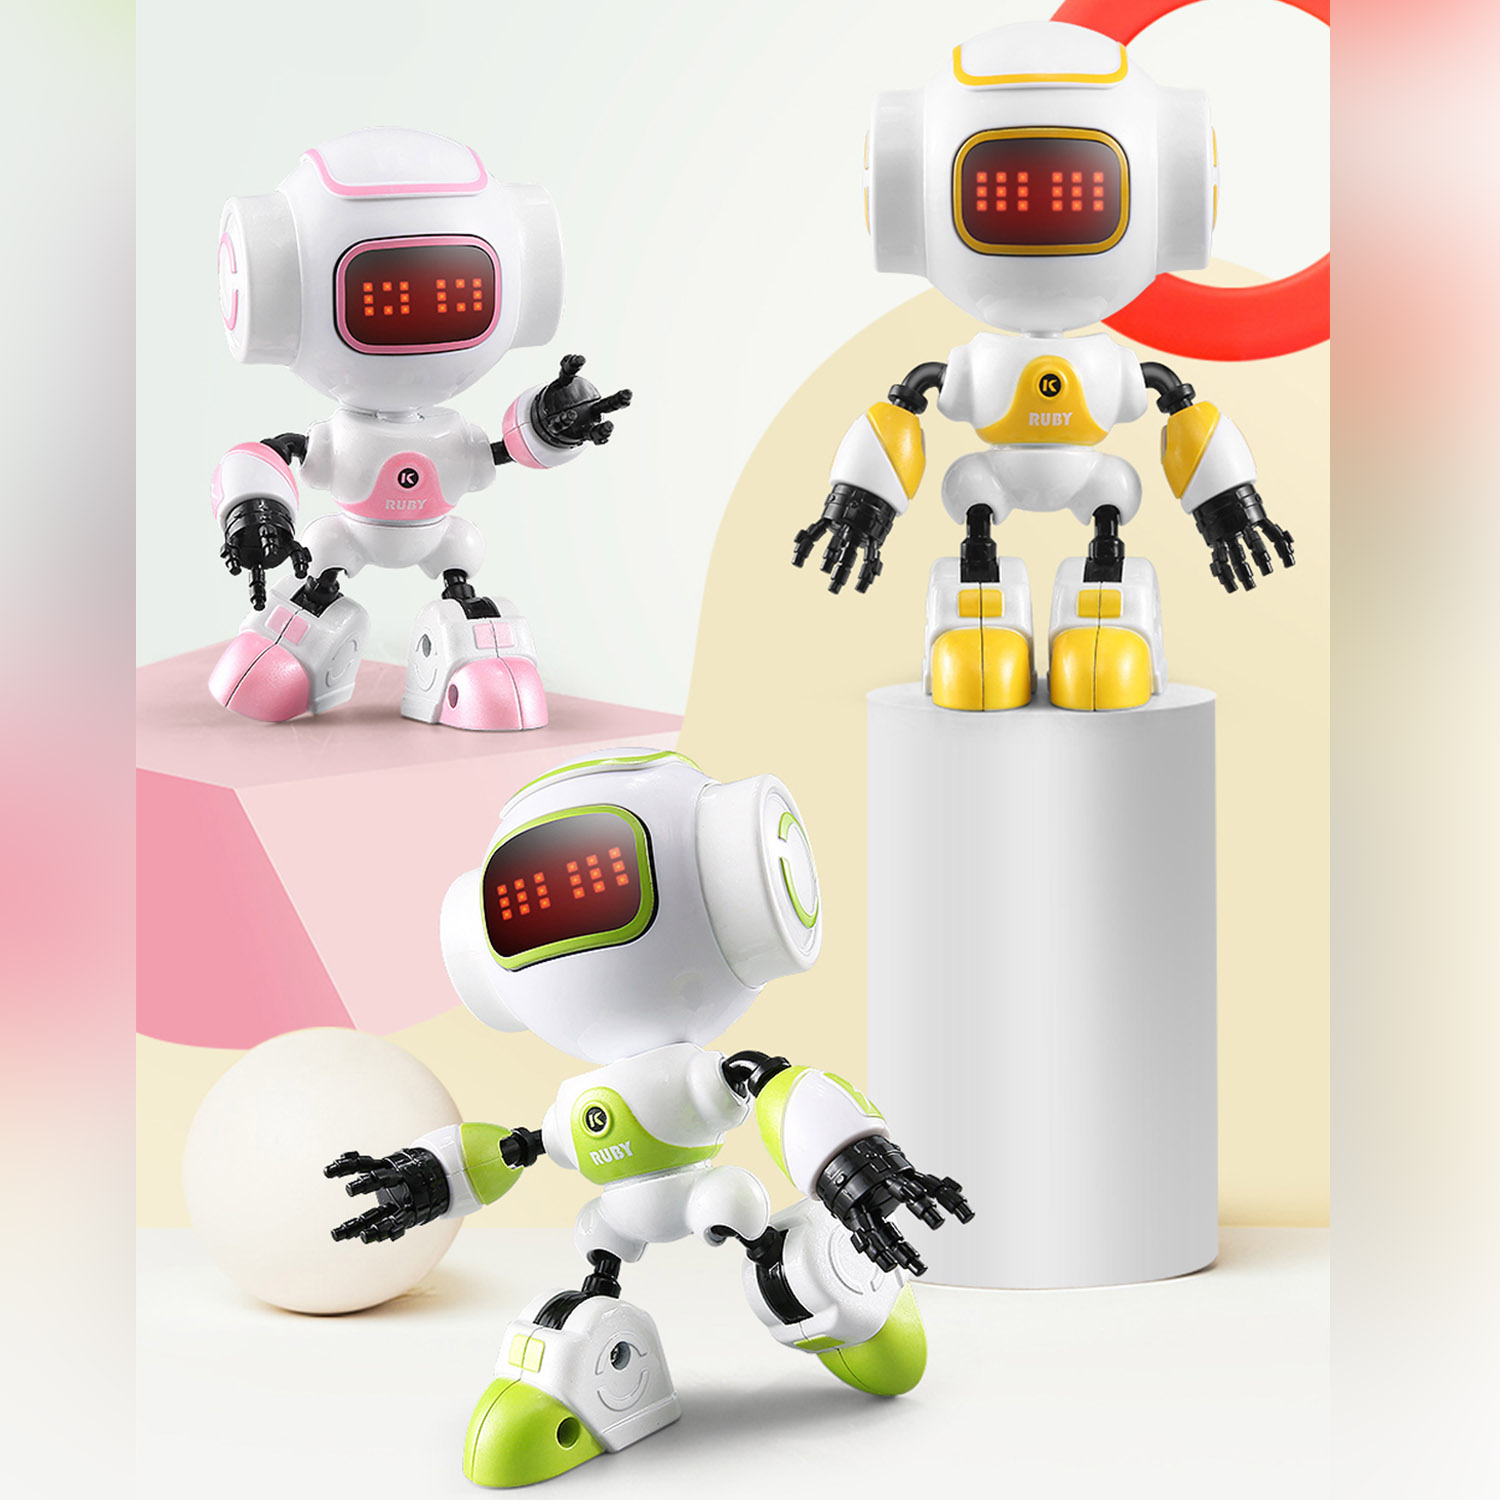 Mini Cute Robot Touch Sensing Model Toy With LED Eyes Smart Voice DIY Gesture Alloy Body For Kids Children Gifts